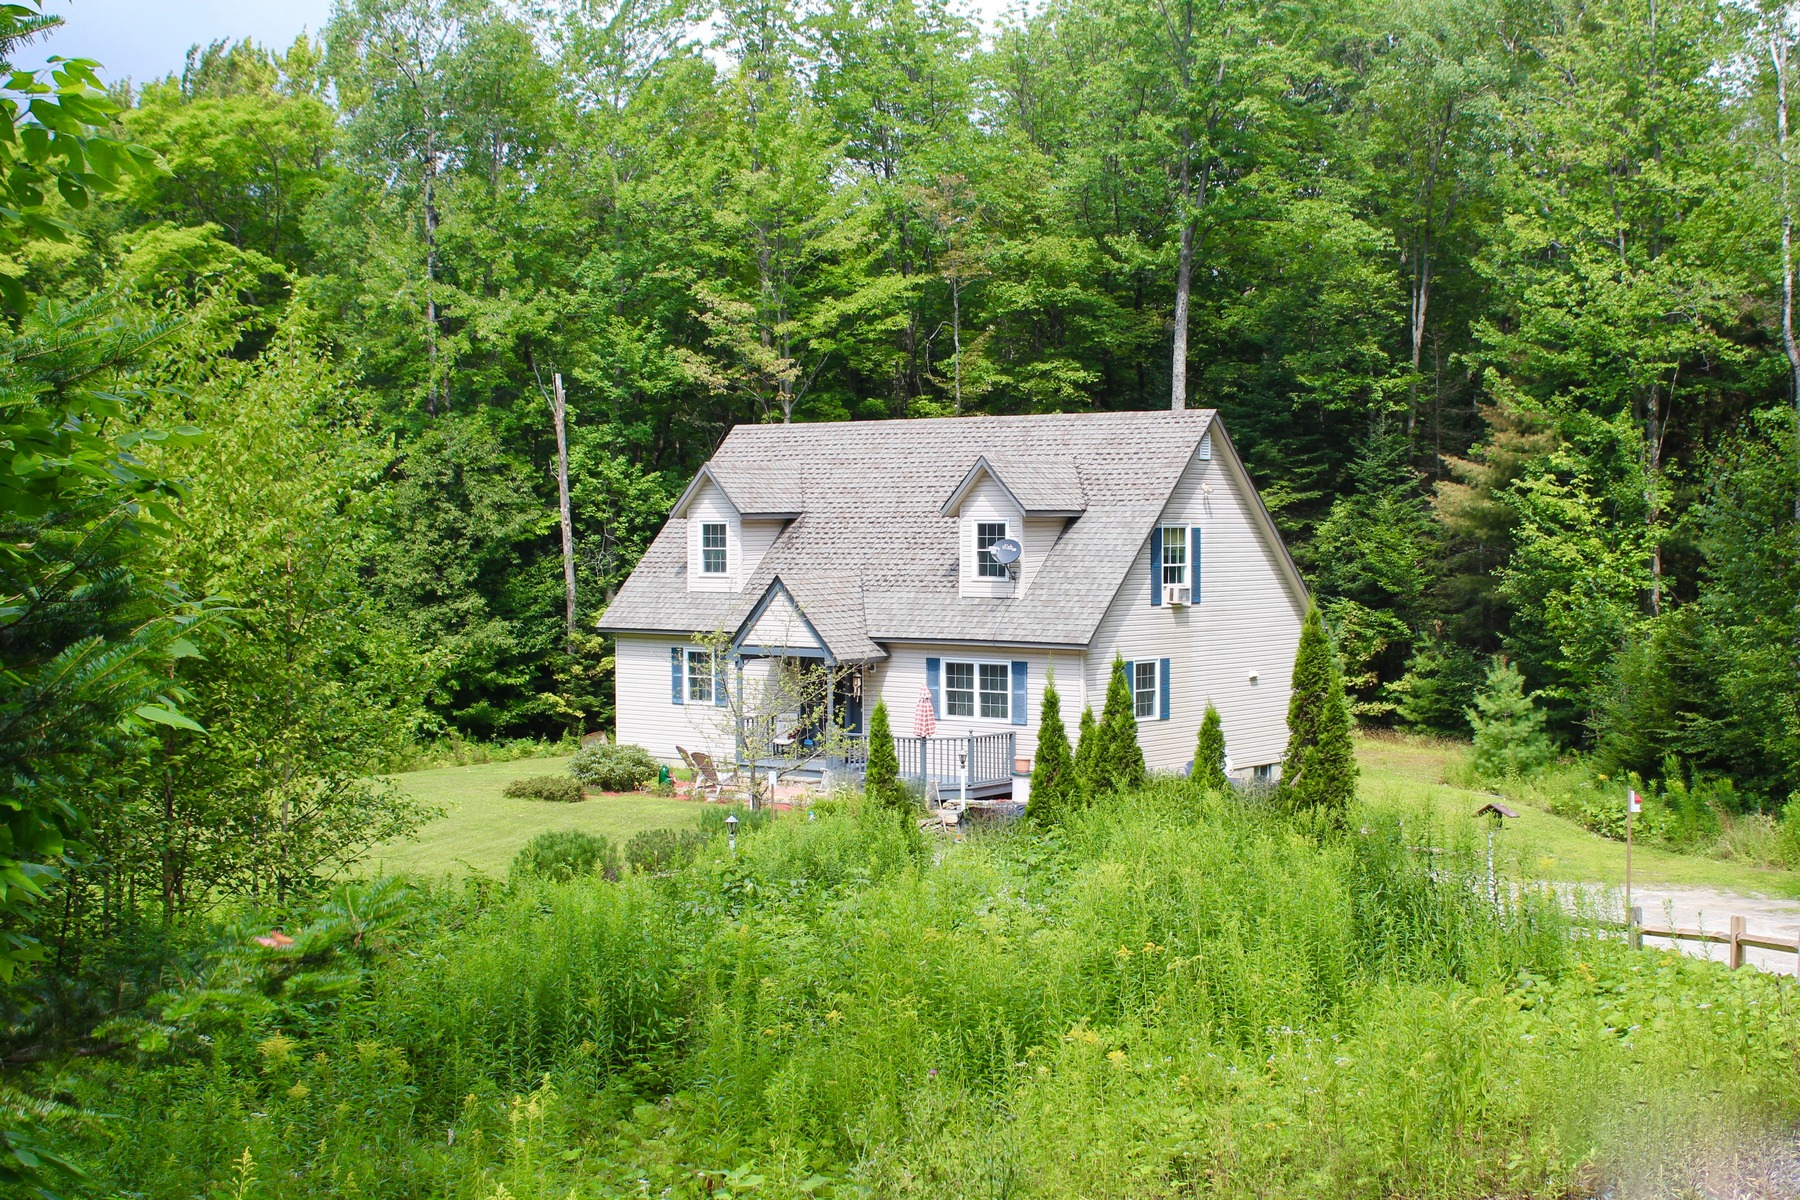 Maison unifamiliale pour l Vente à 245 Teer Road, Mount Holly 245 Teer Rd Mount Holly, Vermont, 05730 États-Unis